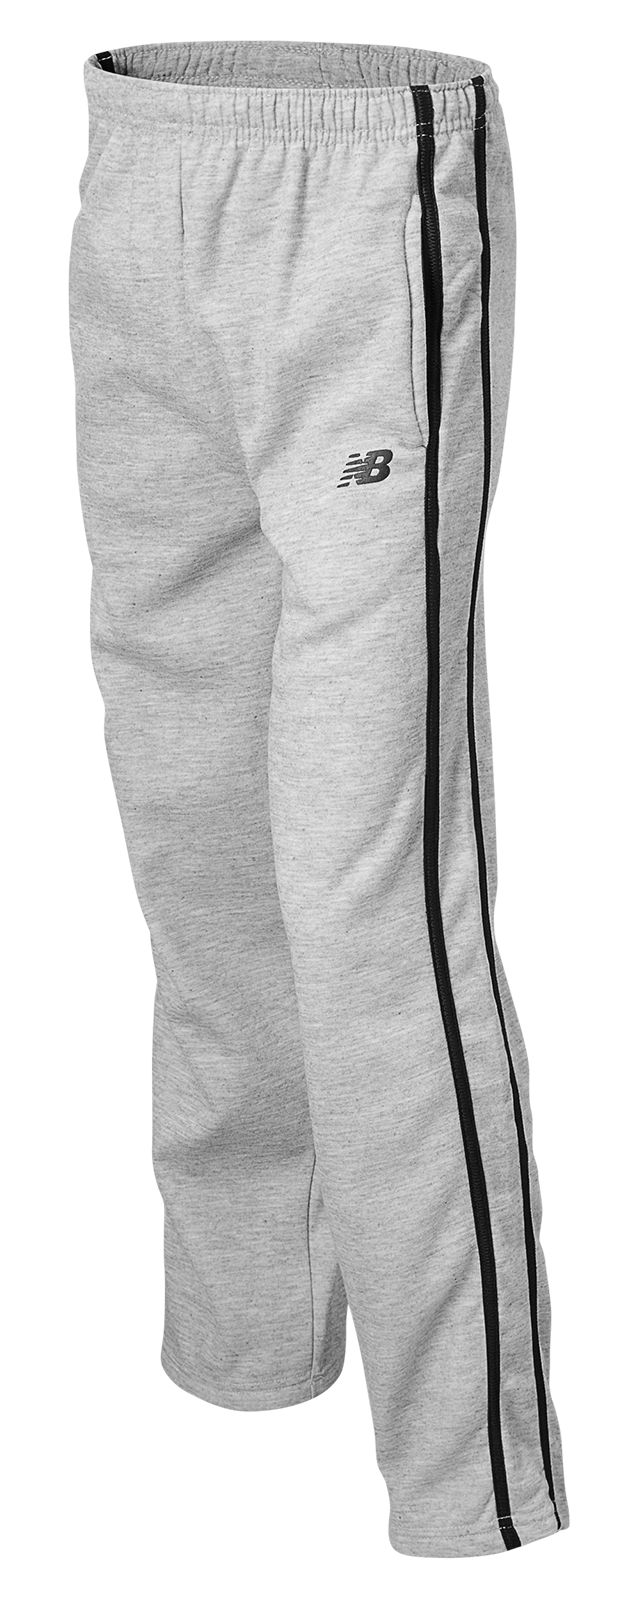 Boy's Fleece Pant